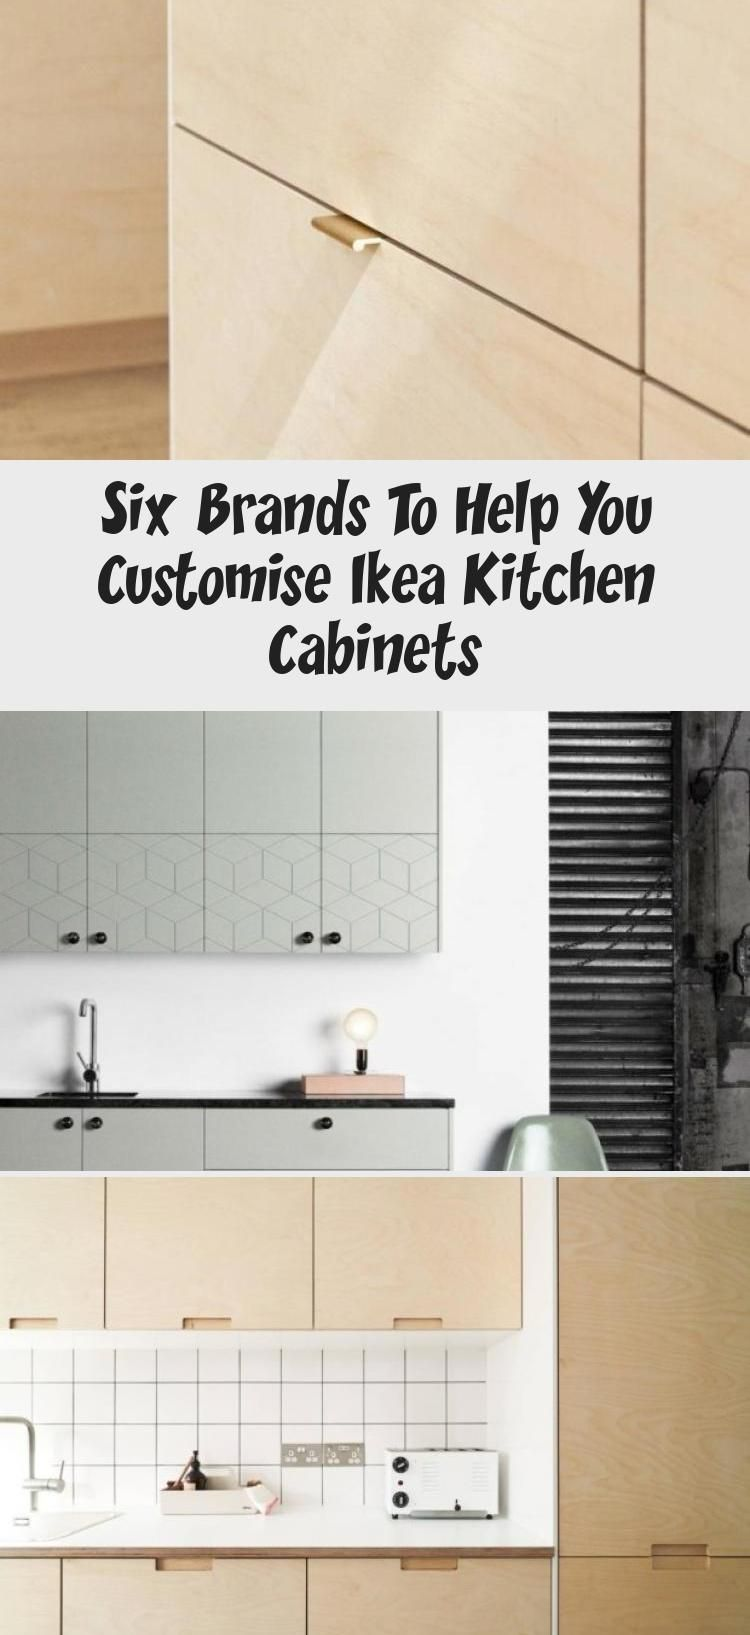 Six Brands To Help You Customise Ikea Kitchen Cabinets Ikea Kitchen Ikea Kitchen Cabinets Kitchen Cabinets